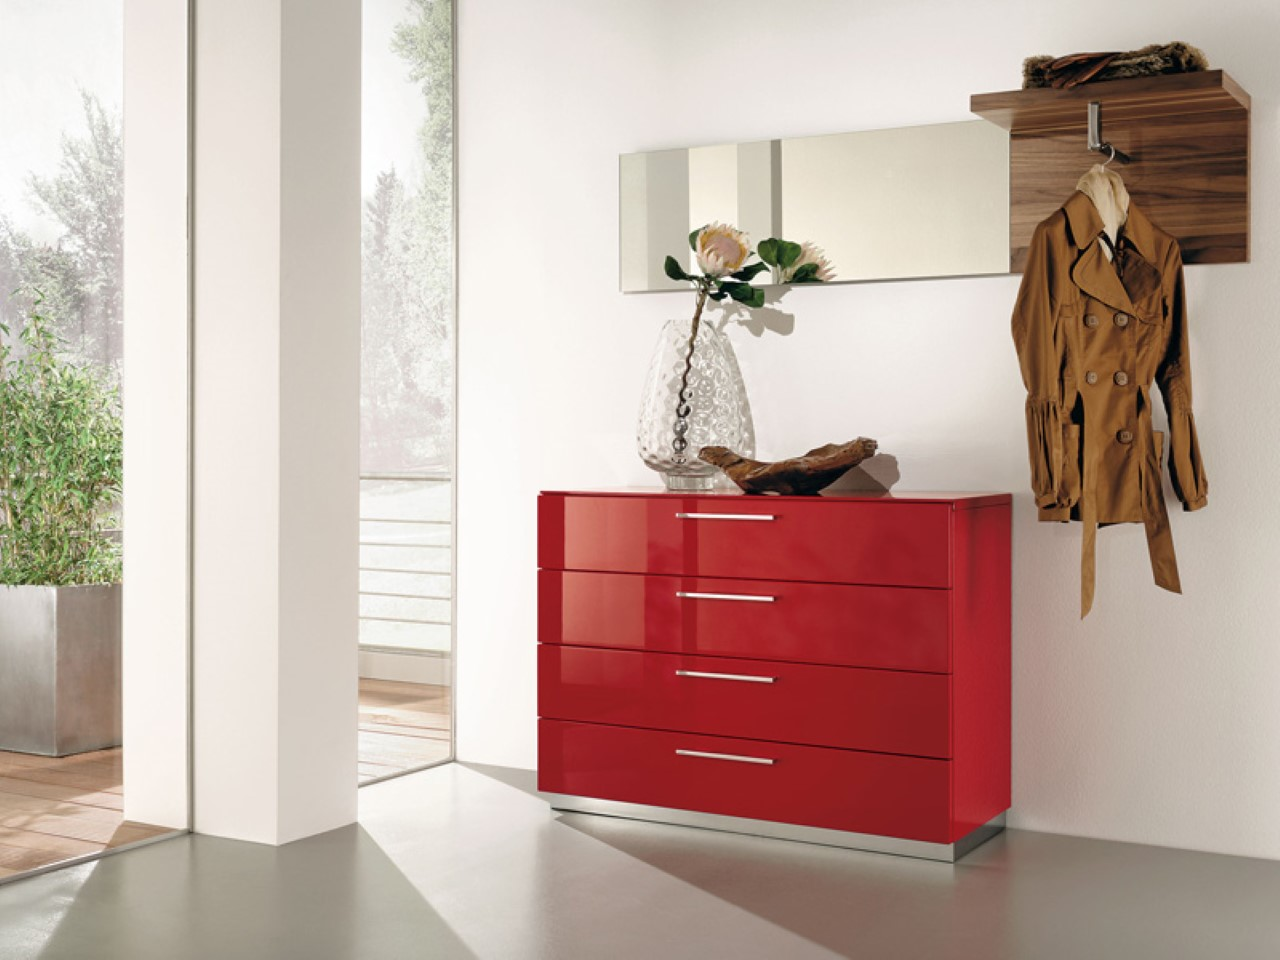 elegant-red-small-console-table-for-hallway-design-with-drawesr-and-indoor-plant-and-open-plan-room